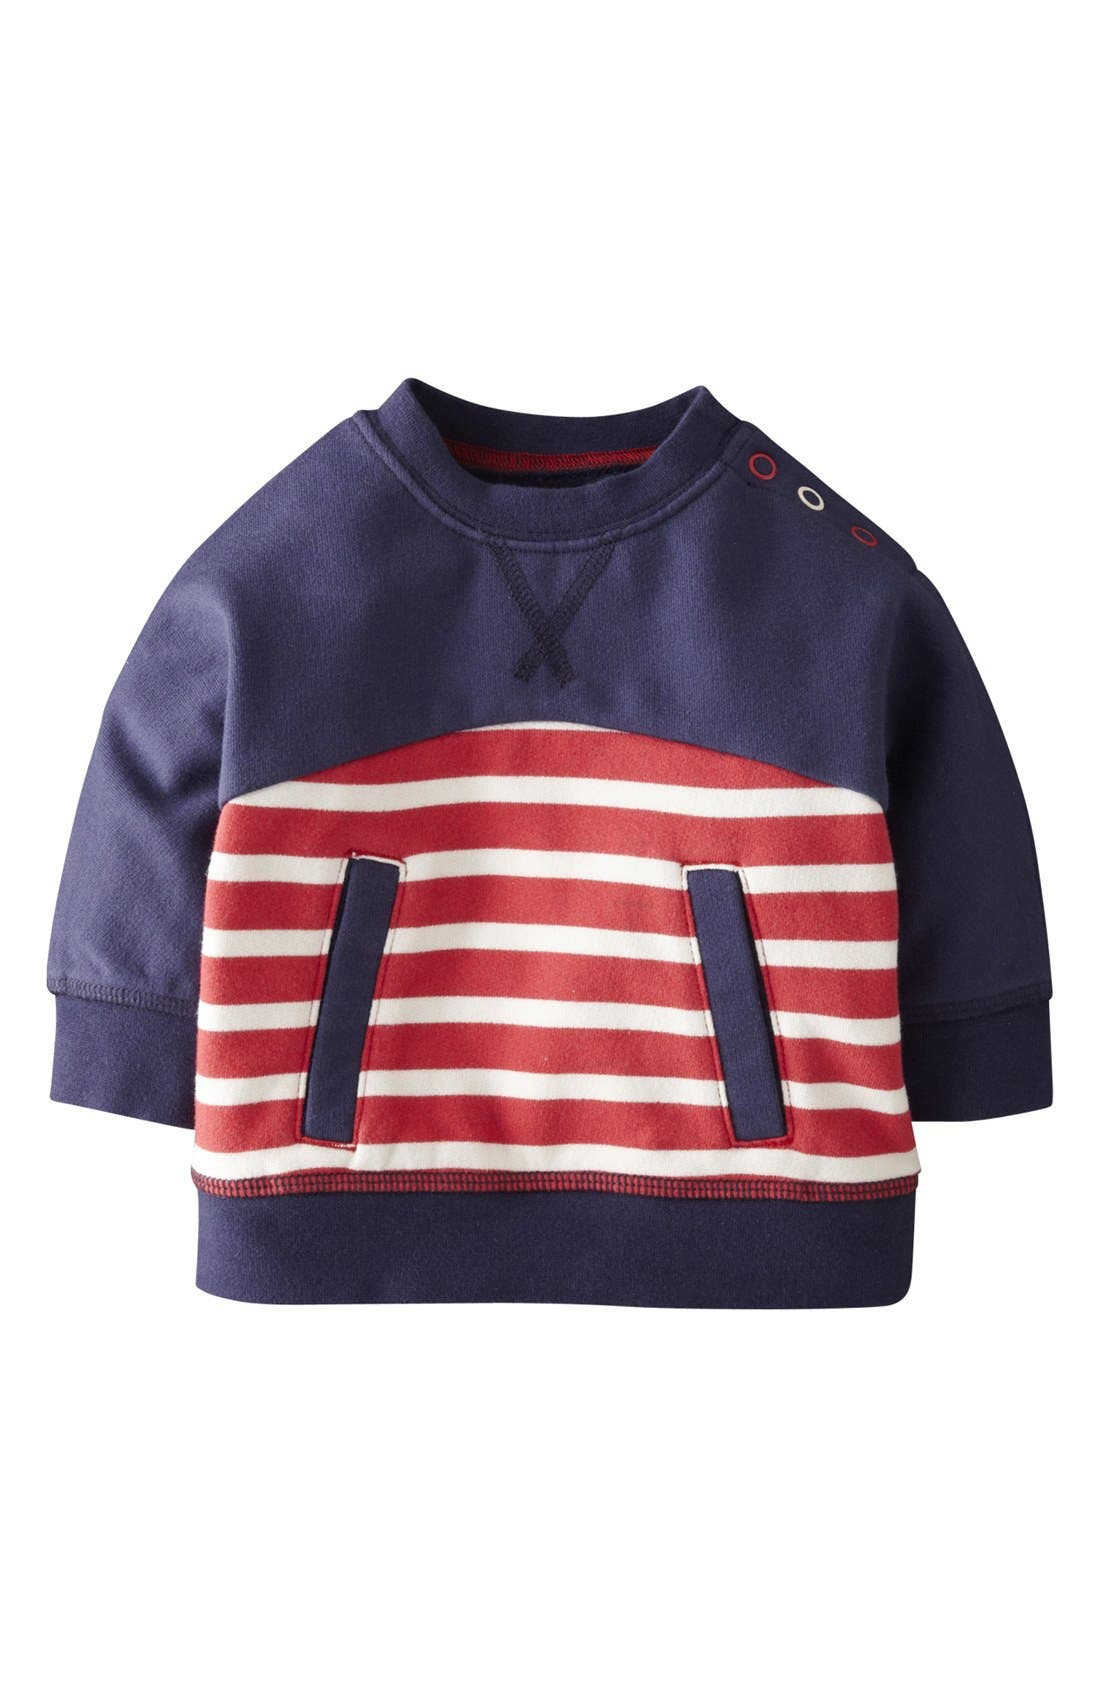 Alternate Image 1 Selected - Mini Boden 'Hotchpotch' Pullover (Baby Boys)